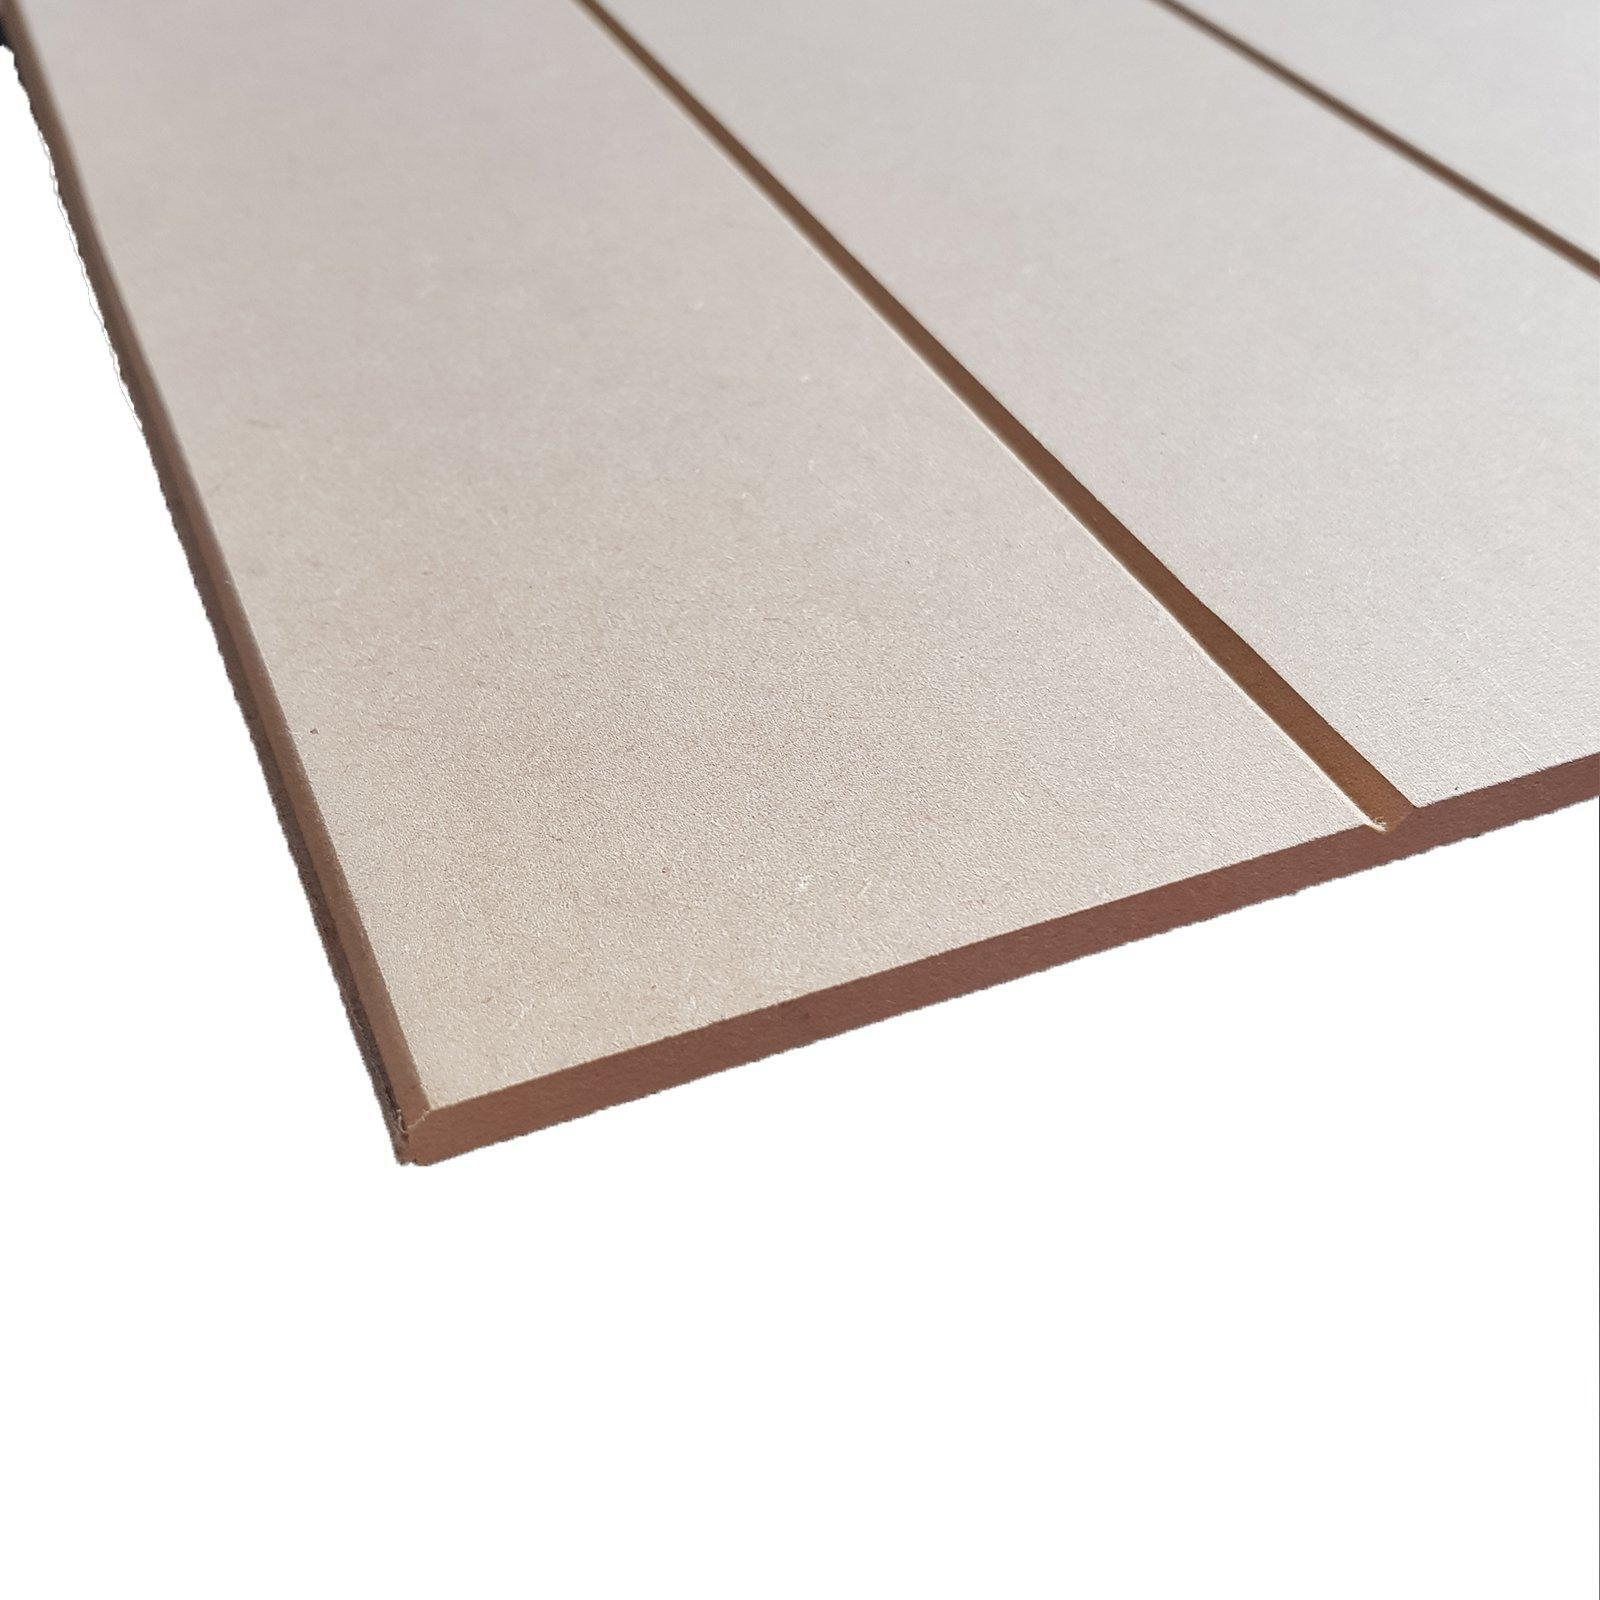 IBS V-Grooved 2400 x 1200 x 12mm Untreated Ply Lining